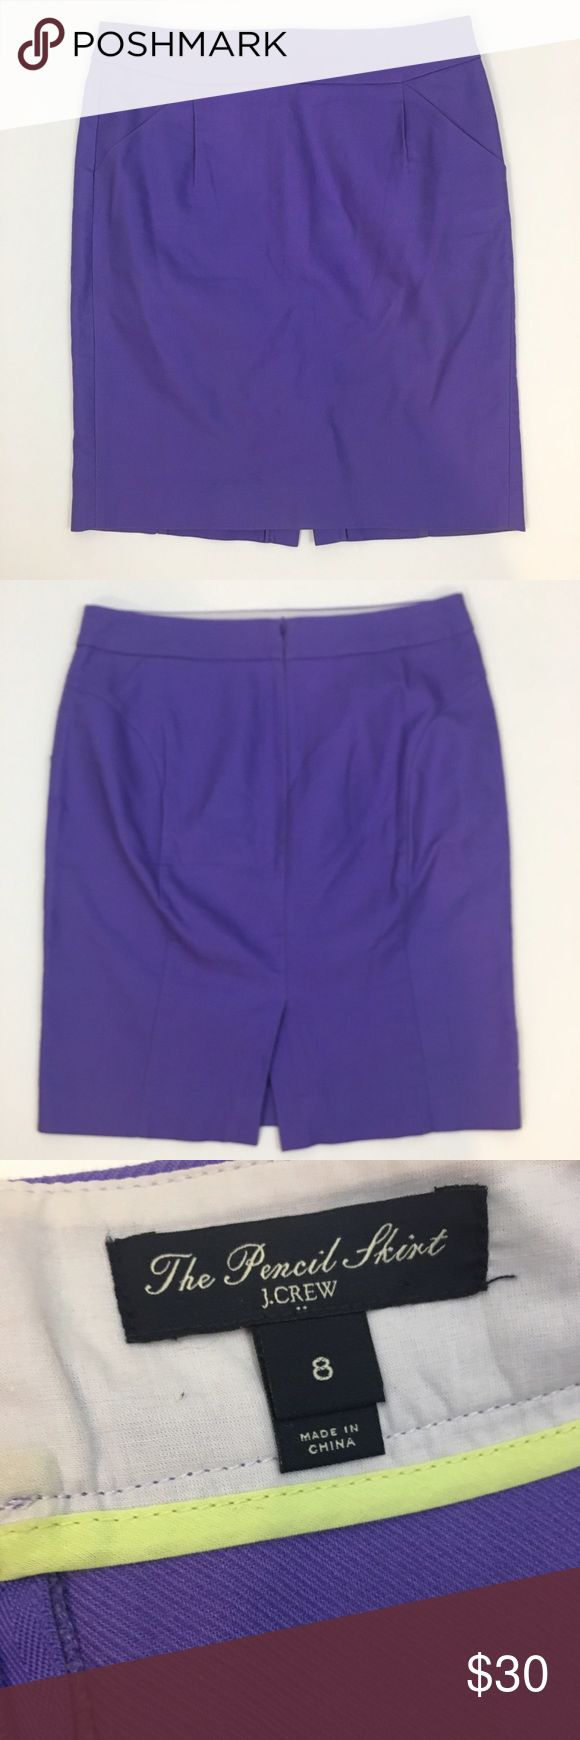 "J. Crew Factory purple pencil skirt J. Crew Factory purple pencil skirt. Front pockets. Unlined. Approx measurements laying flat: waist - 15.5"", length - 21.5"". Has been worn and washed; in great pre-loved condition with no holes or stains J. Crew Factory Skirts Pencil"